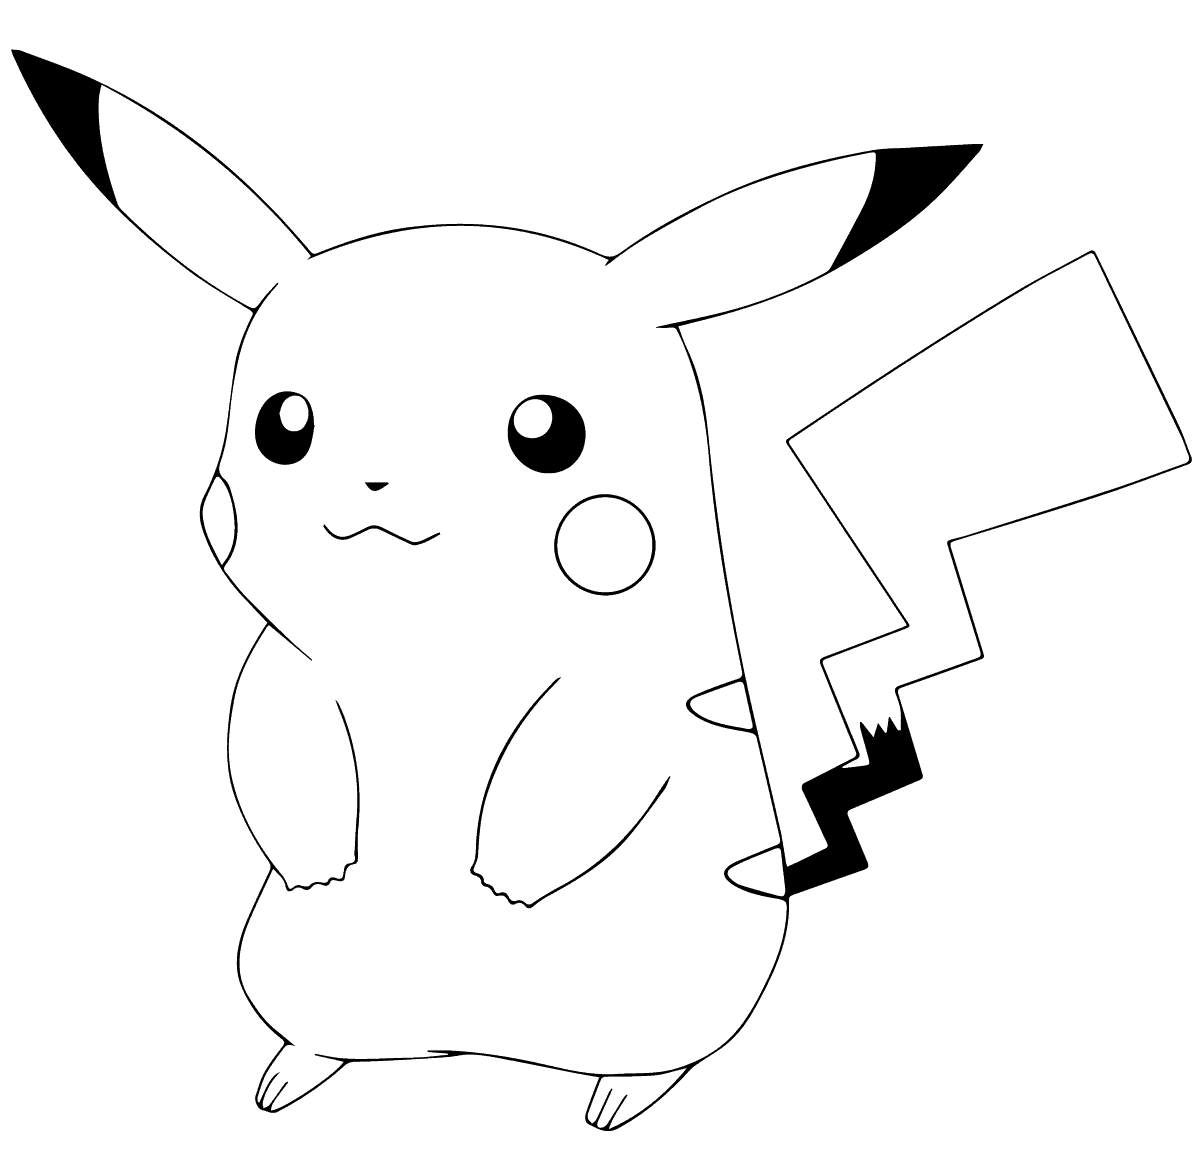 Free Printable Pikachu Coloring Pages - Coloring Junction